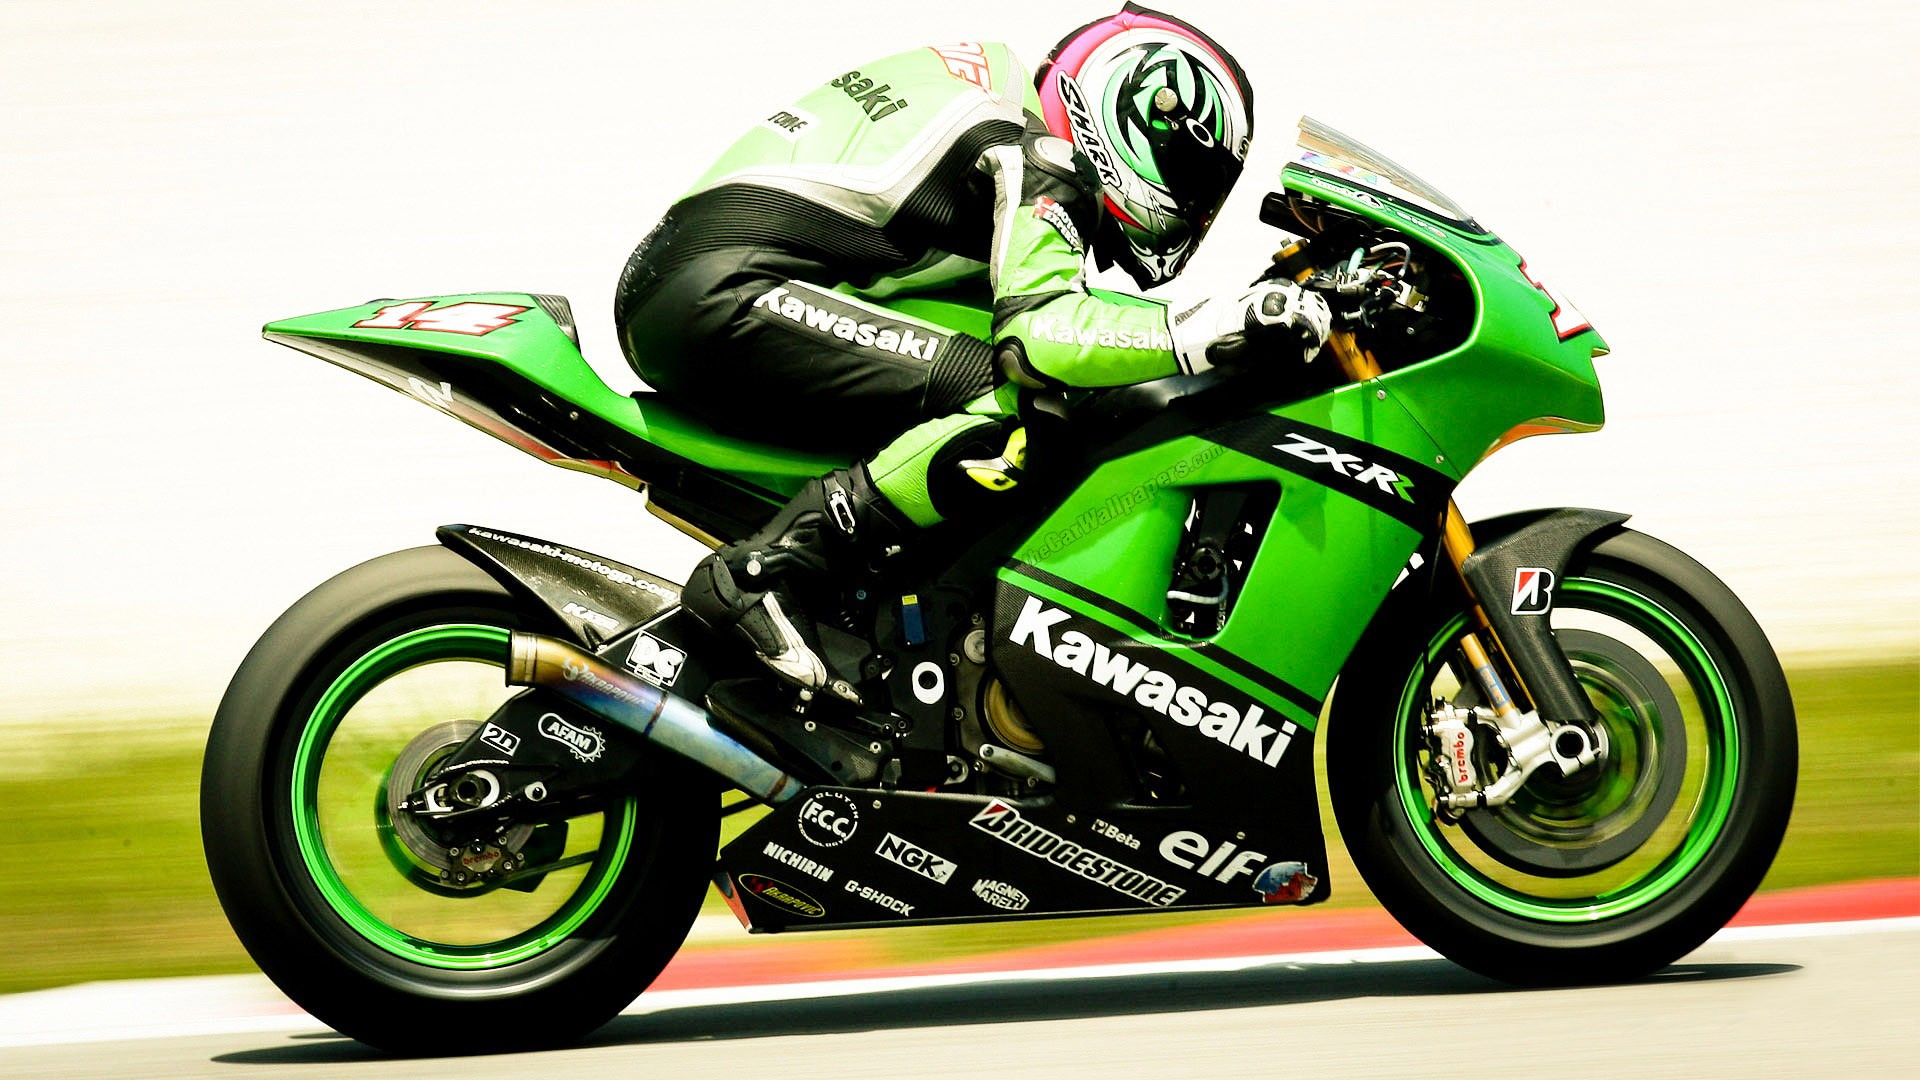 44 Best Free Kawasaki Racing Wallpapers Wallpaperaccess